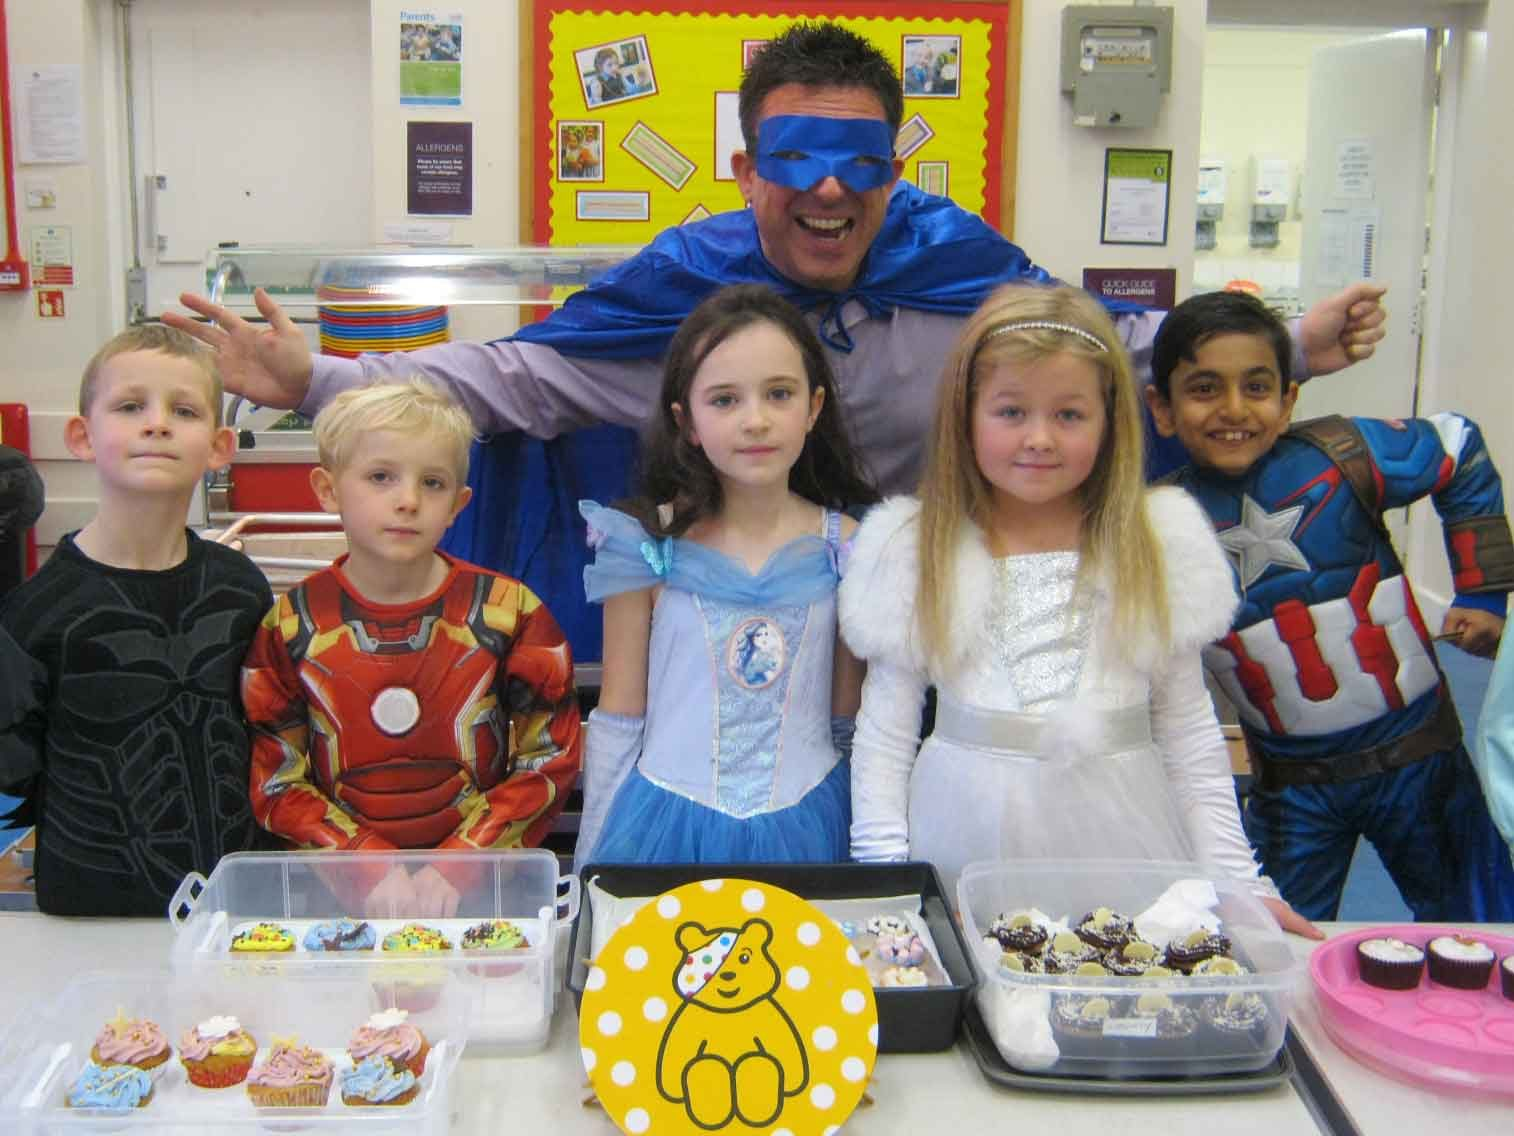 Children and teachers dressed as super heroes for Children in Need